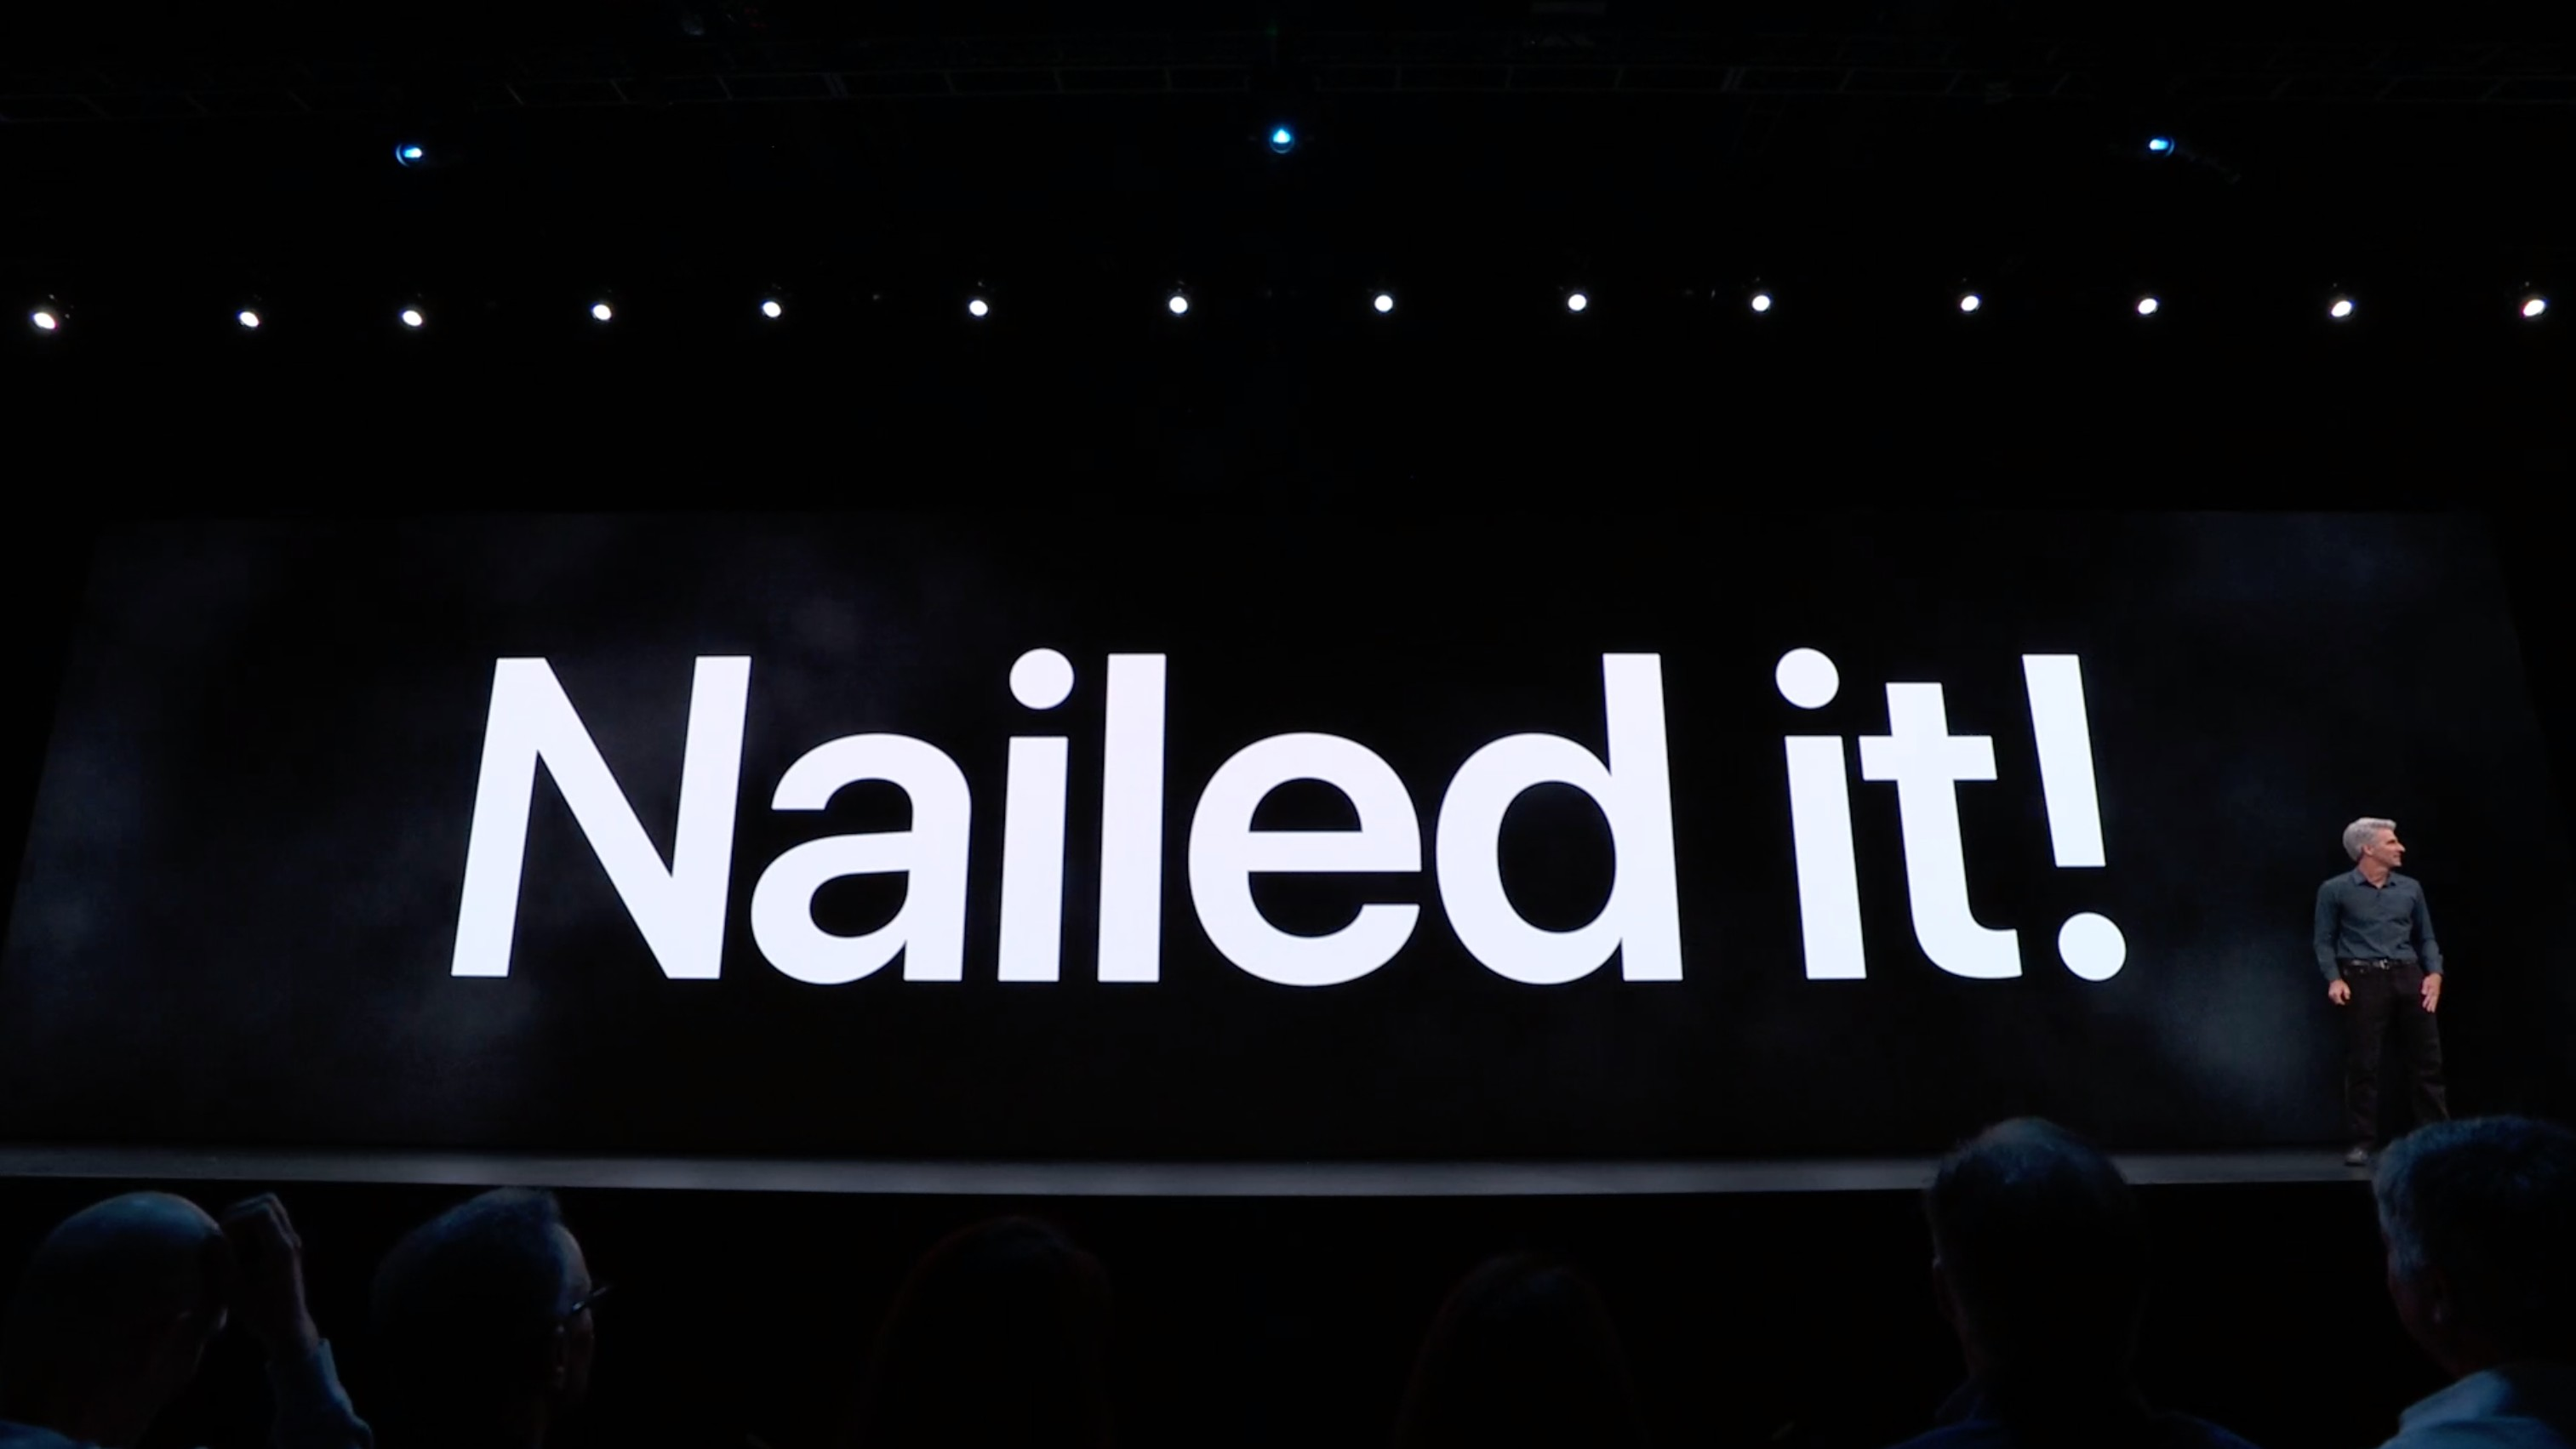 Nailed it! Craig Federighi onstage during the WWDC 2019 keynote.